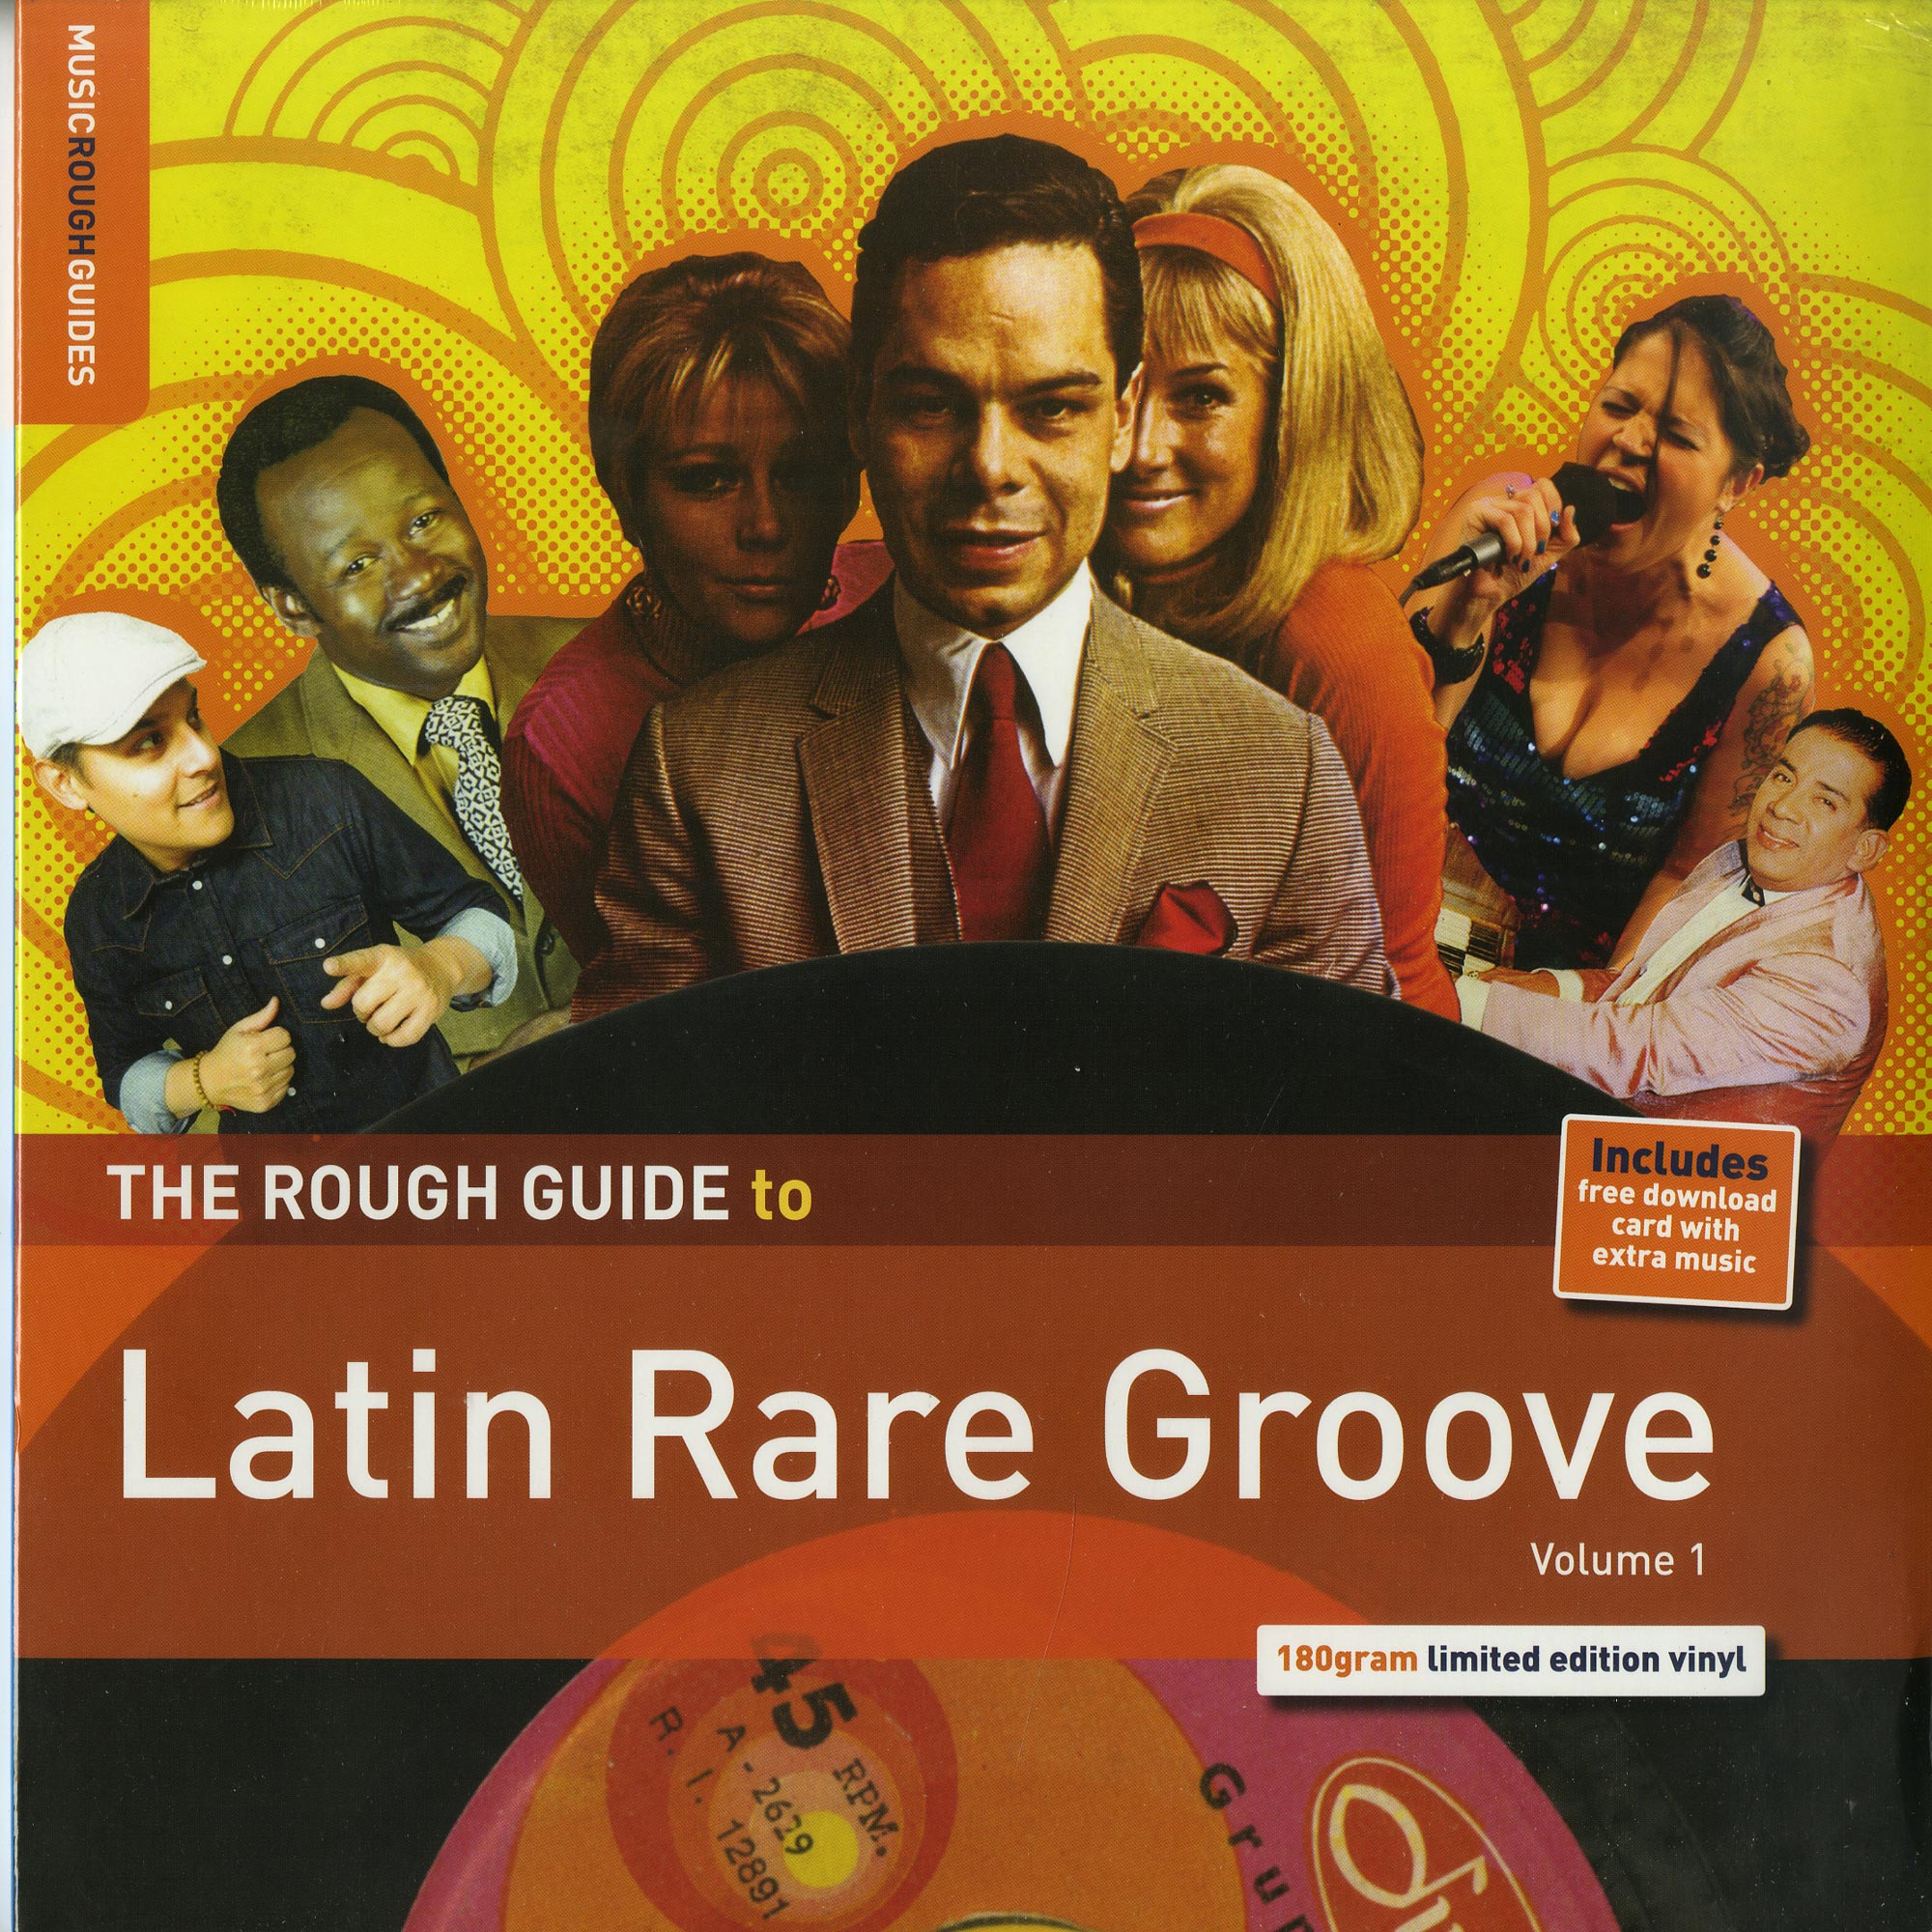 Various Artists - THE ROUGH GUIDE TO LATIN RARE GROOVE VOL. 1